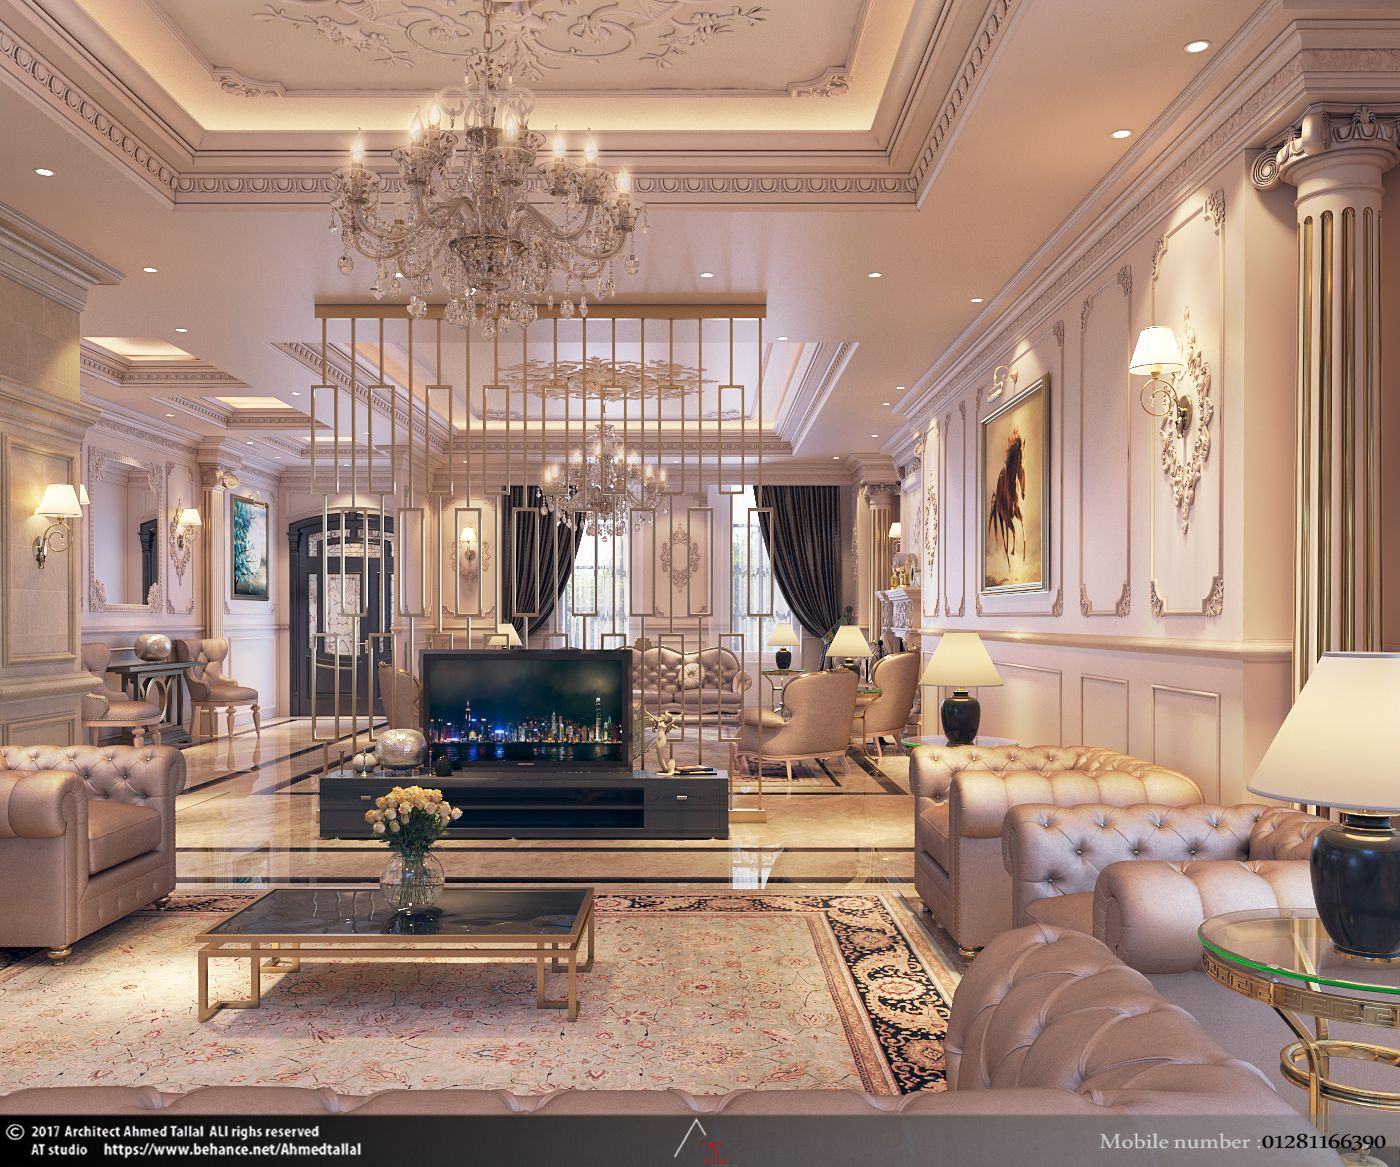 Home Decor 2012 Luxury Homes Interior Decoration Living: In The Heart Of The Maison